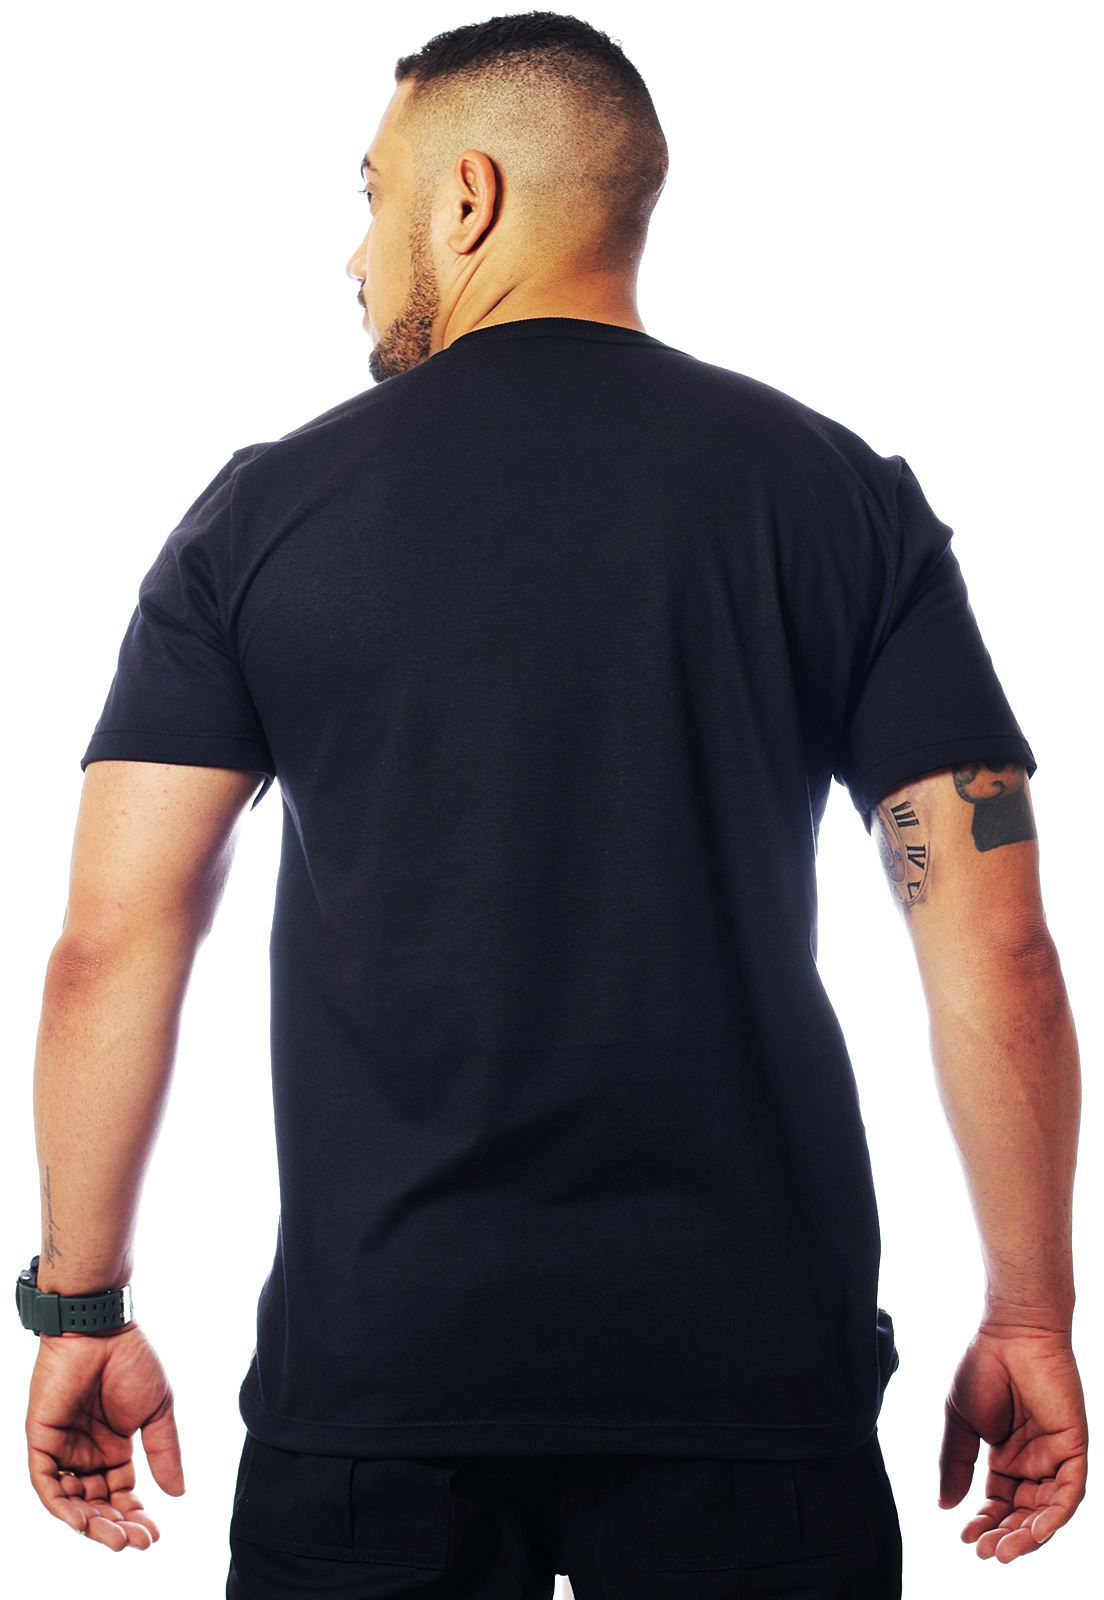 CAMISETA EXPLORER MANGA CURTA MASCULINA - REAL HUNTER OUTDOORS